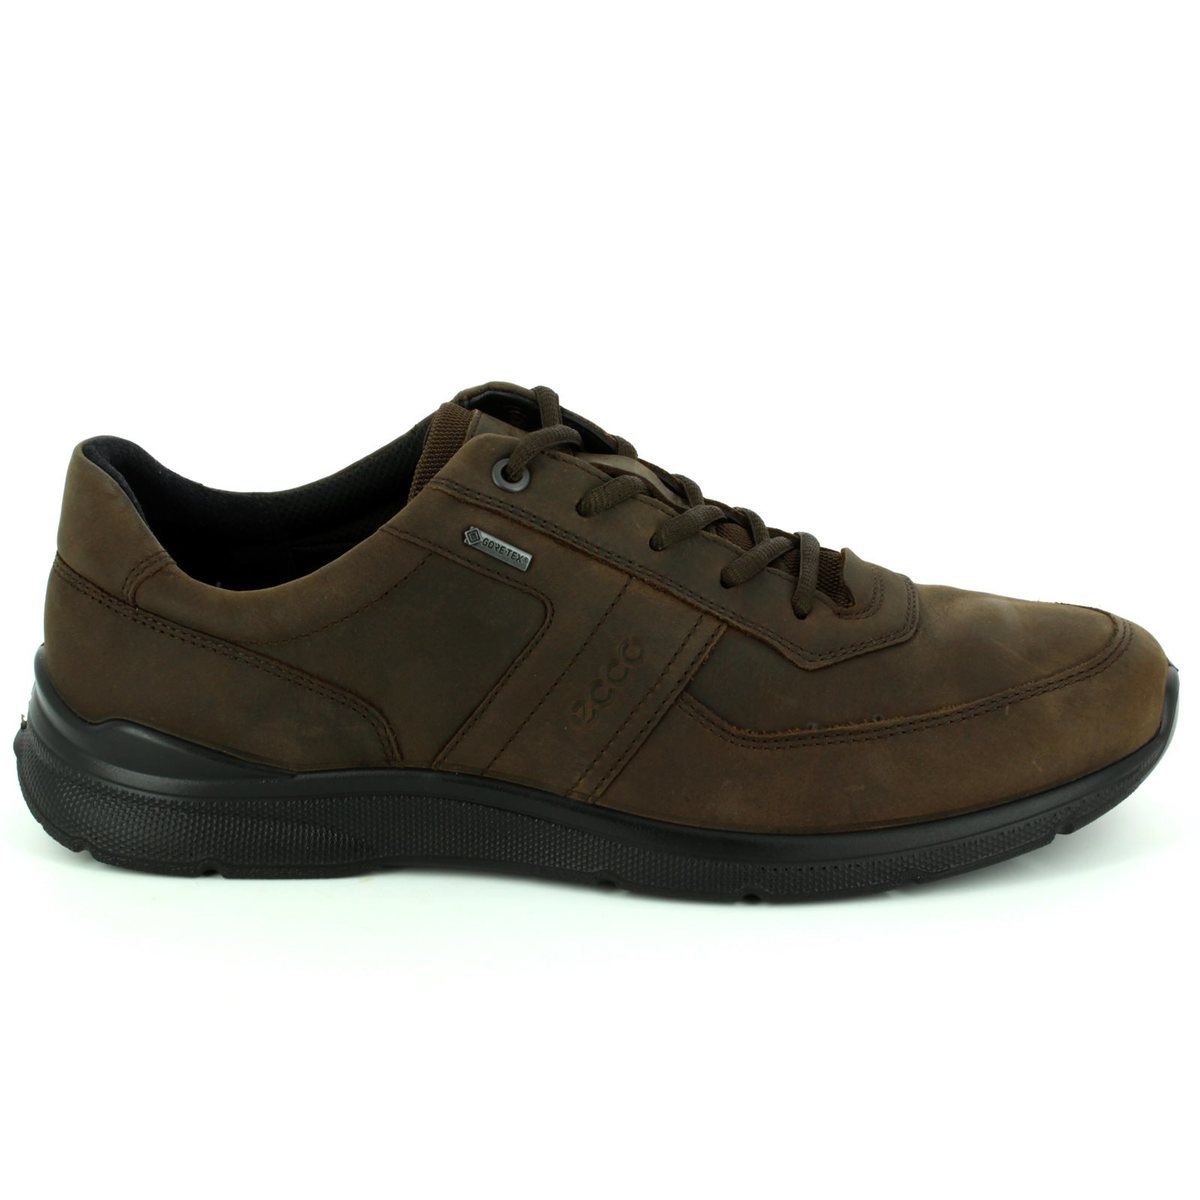 ecco irving tex 511614 02072 brown casual shoes